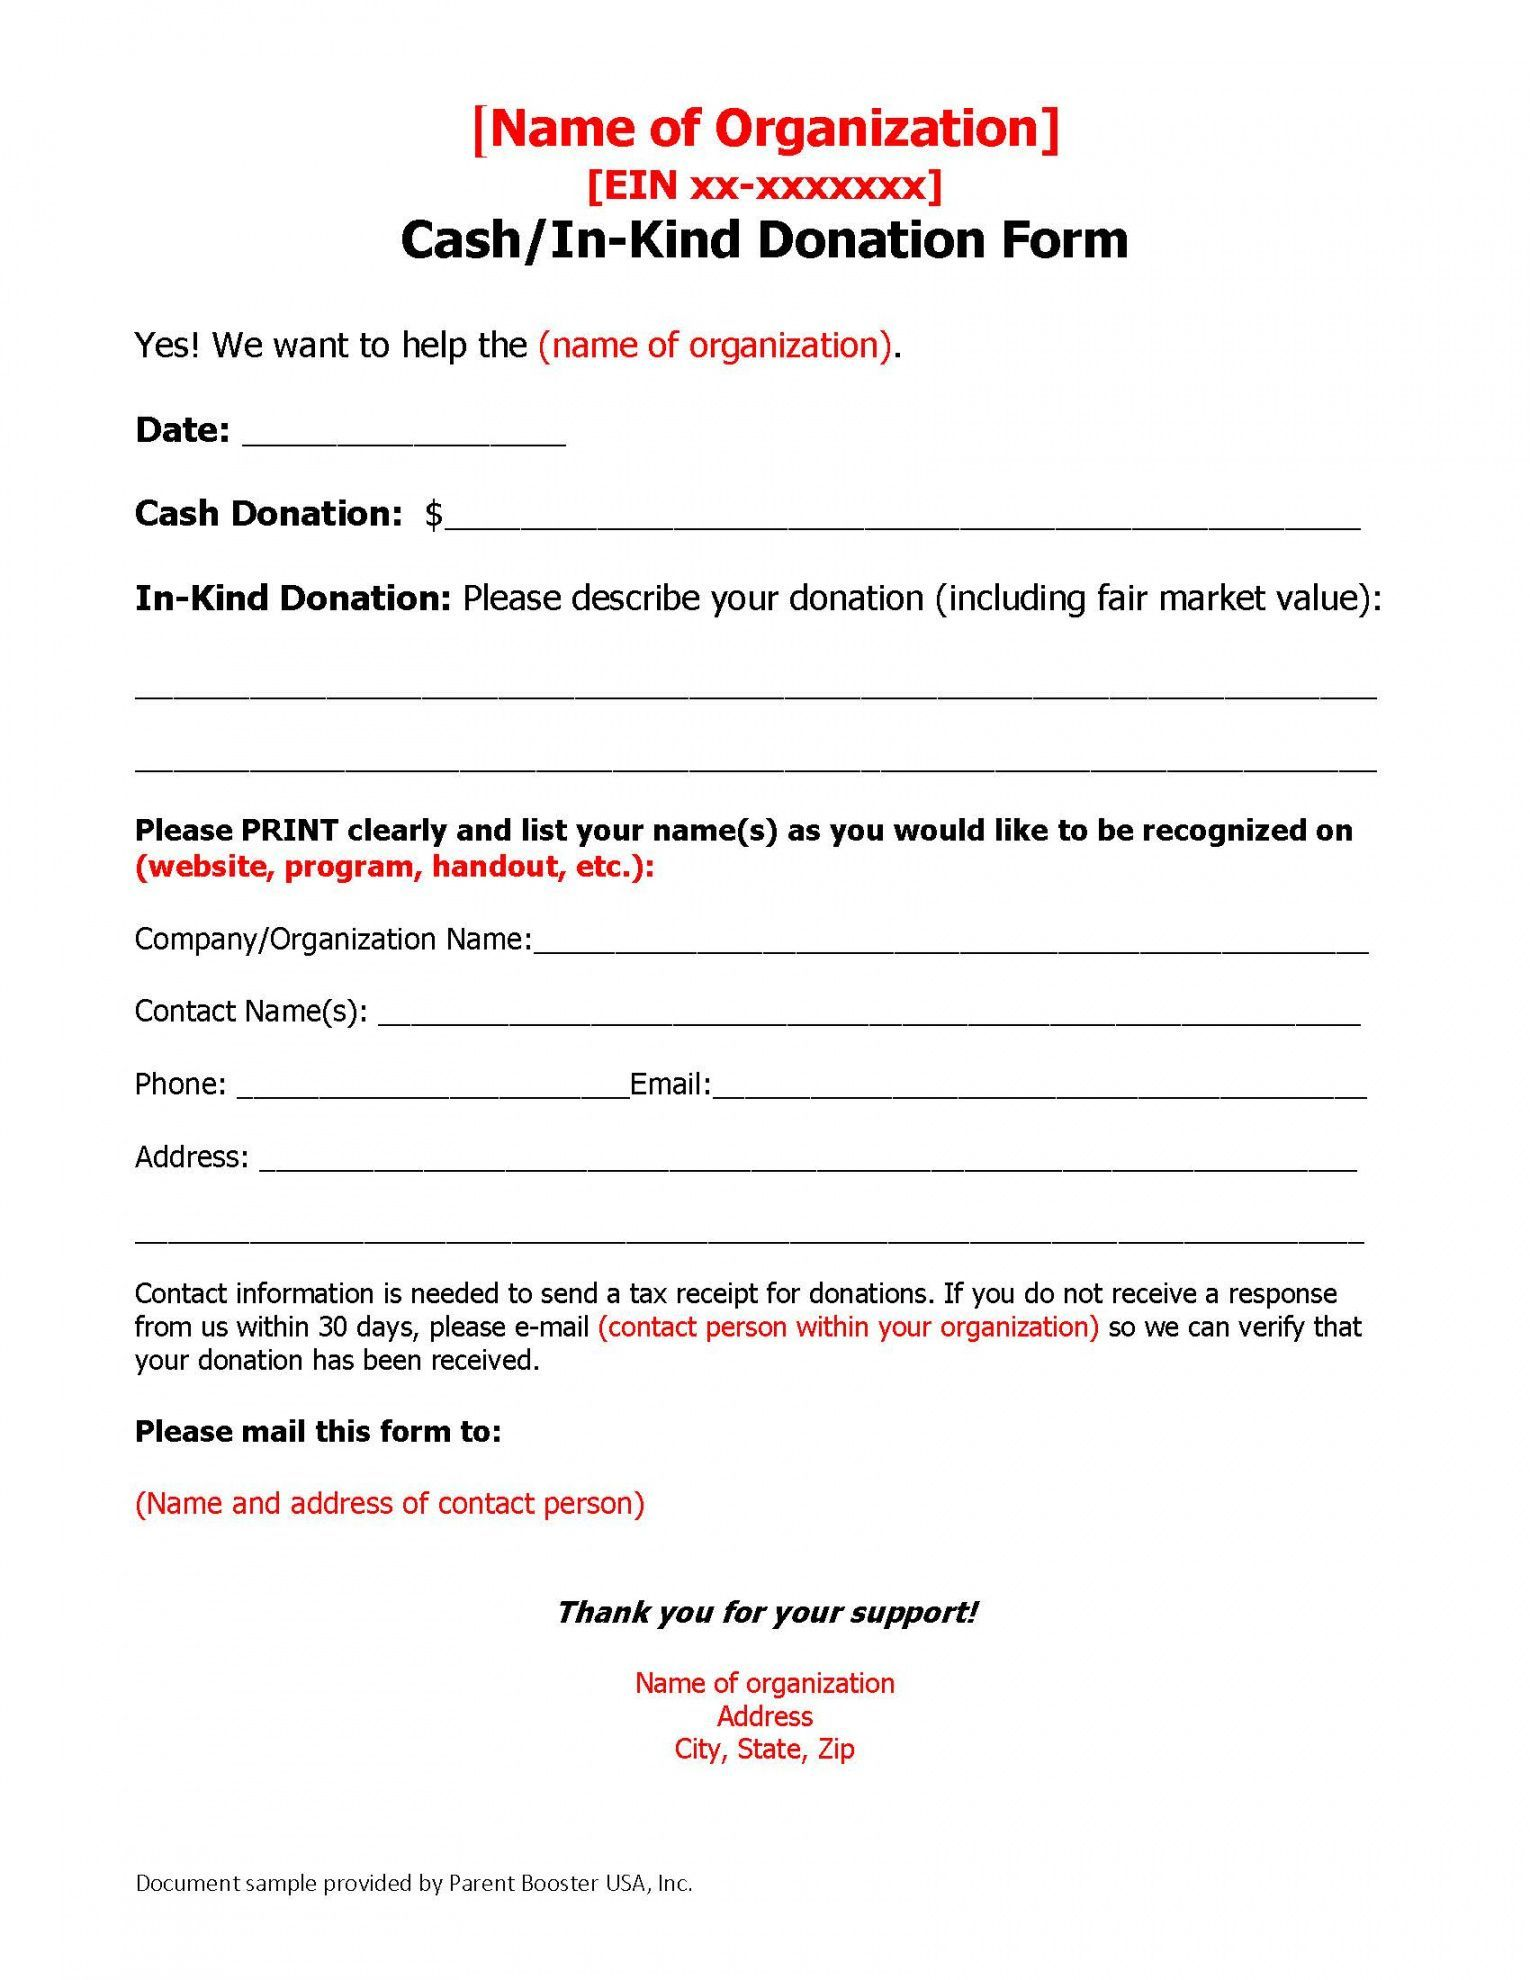 Free Donation Solicitation Letter Template Parent Booster Usa Booster Club Fundraising Lette Donation Letter Template Fundraising Letter Donation Letter